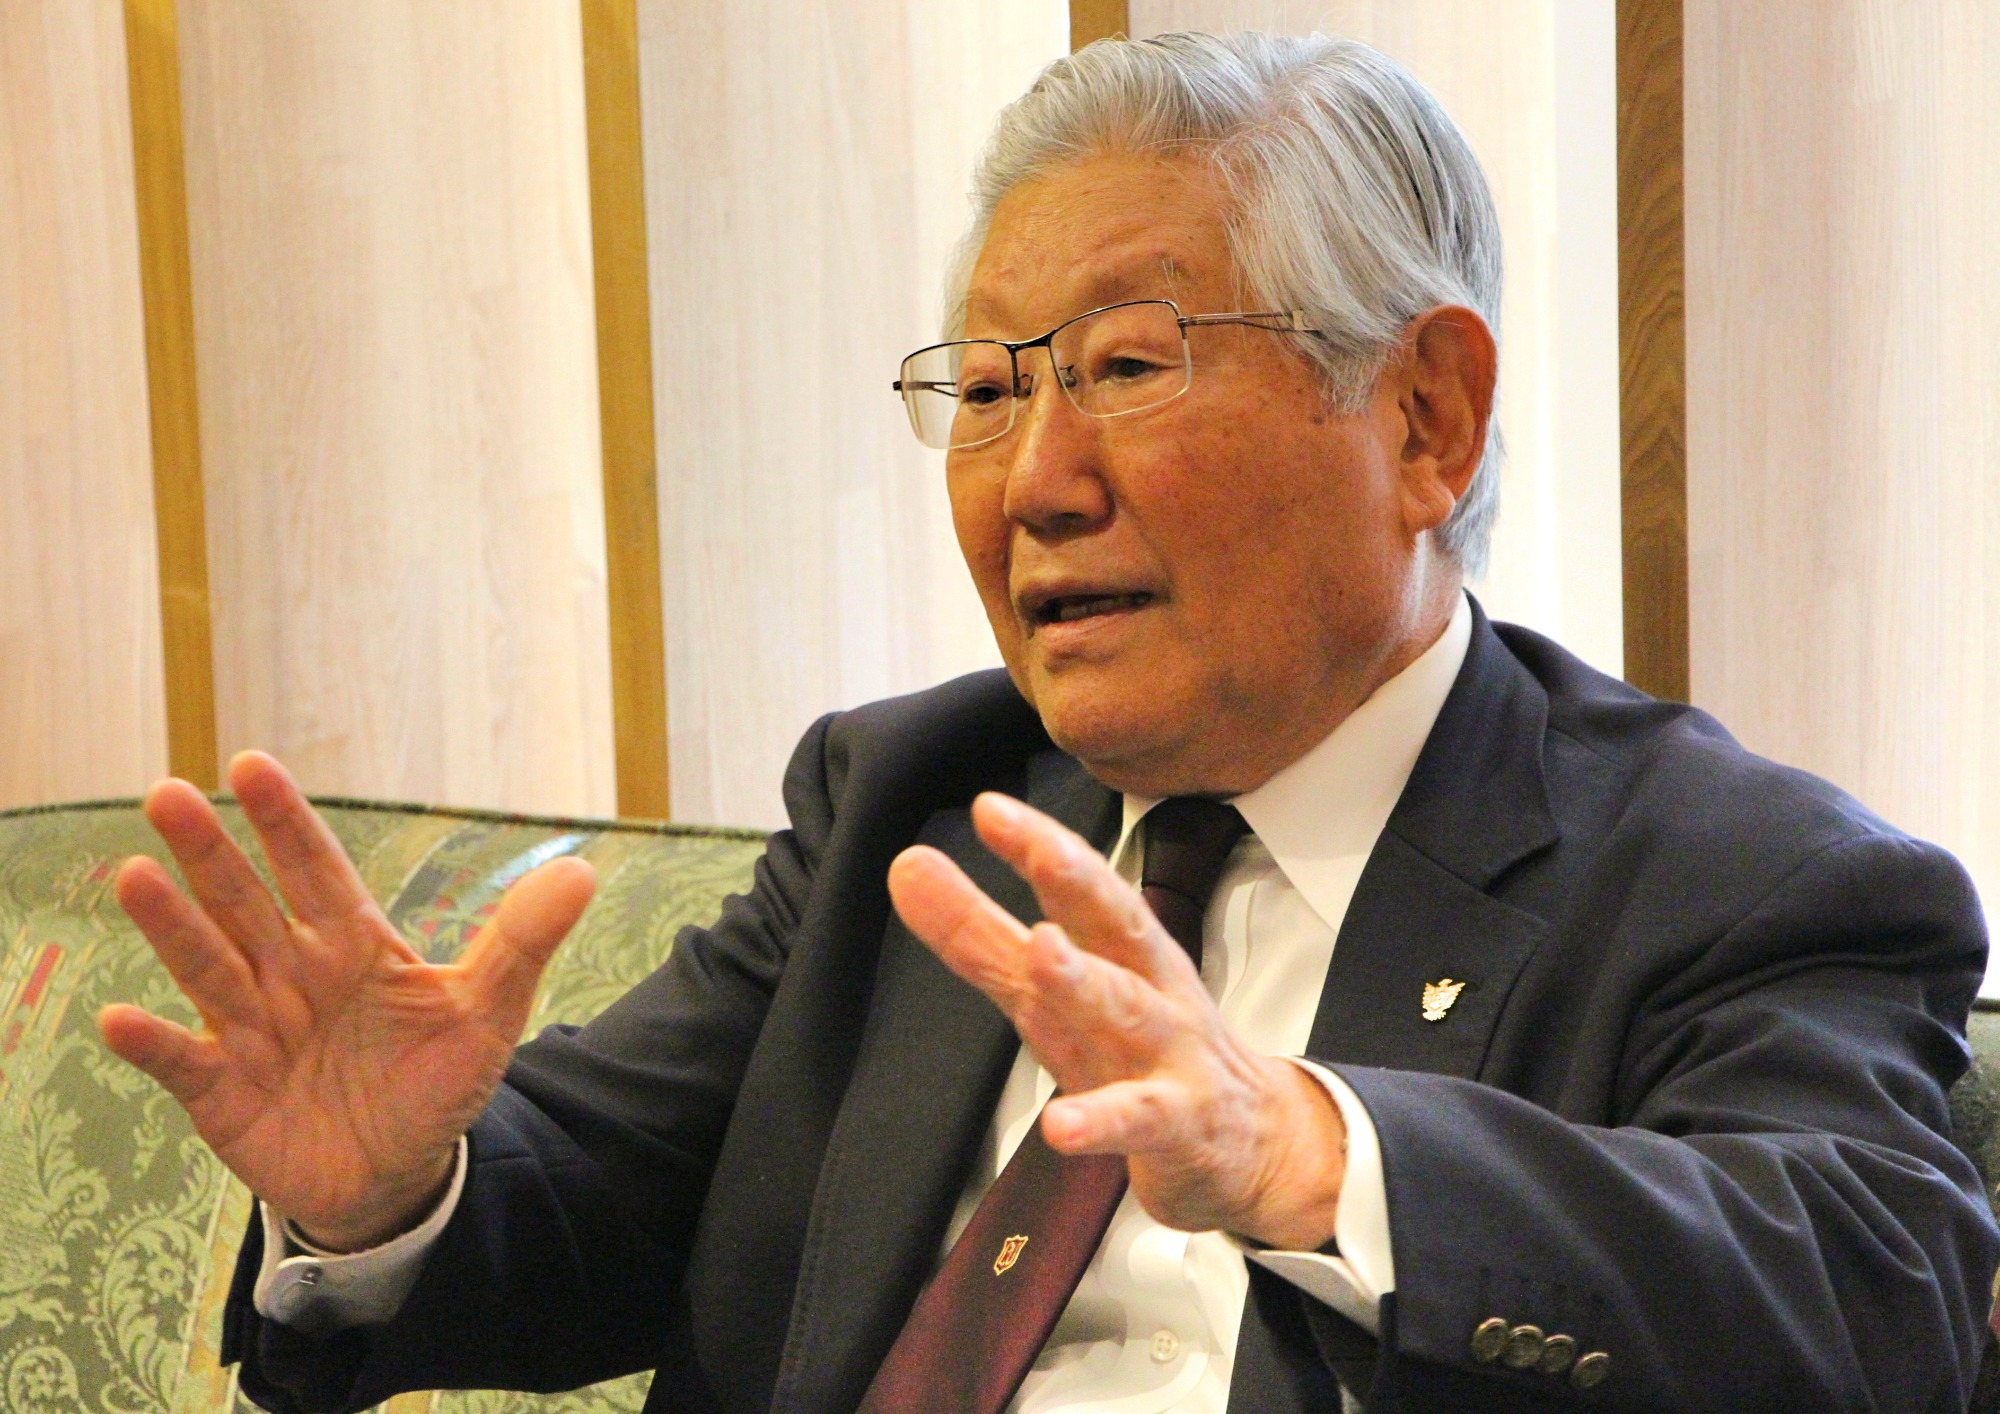 Interview: Yoshito Honda, APIC Trustee (Toshin International Corp. Honorary Chairman)